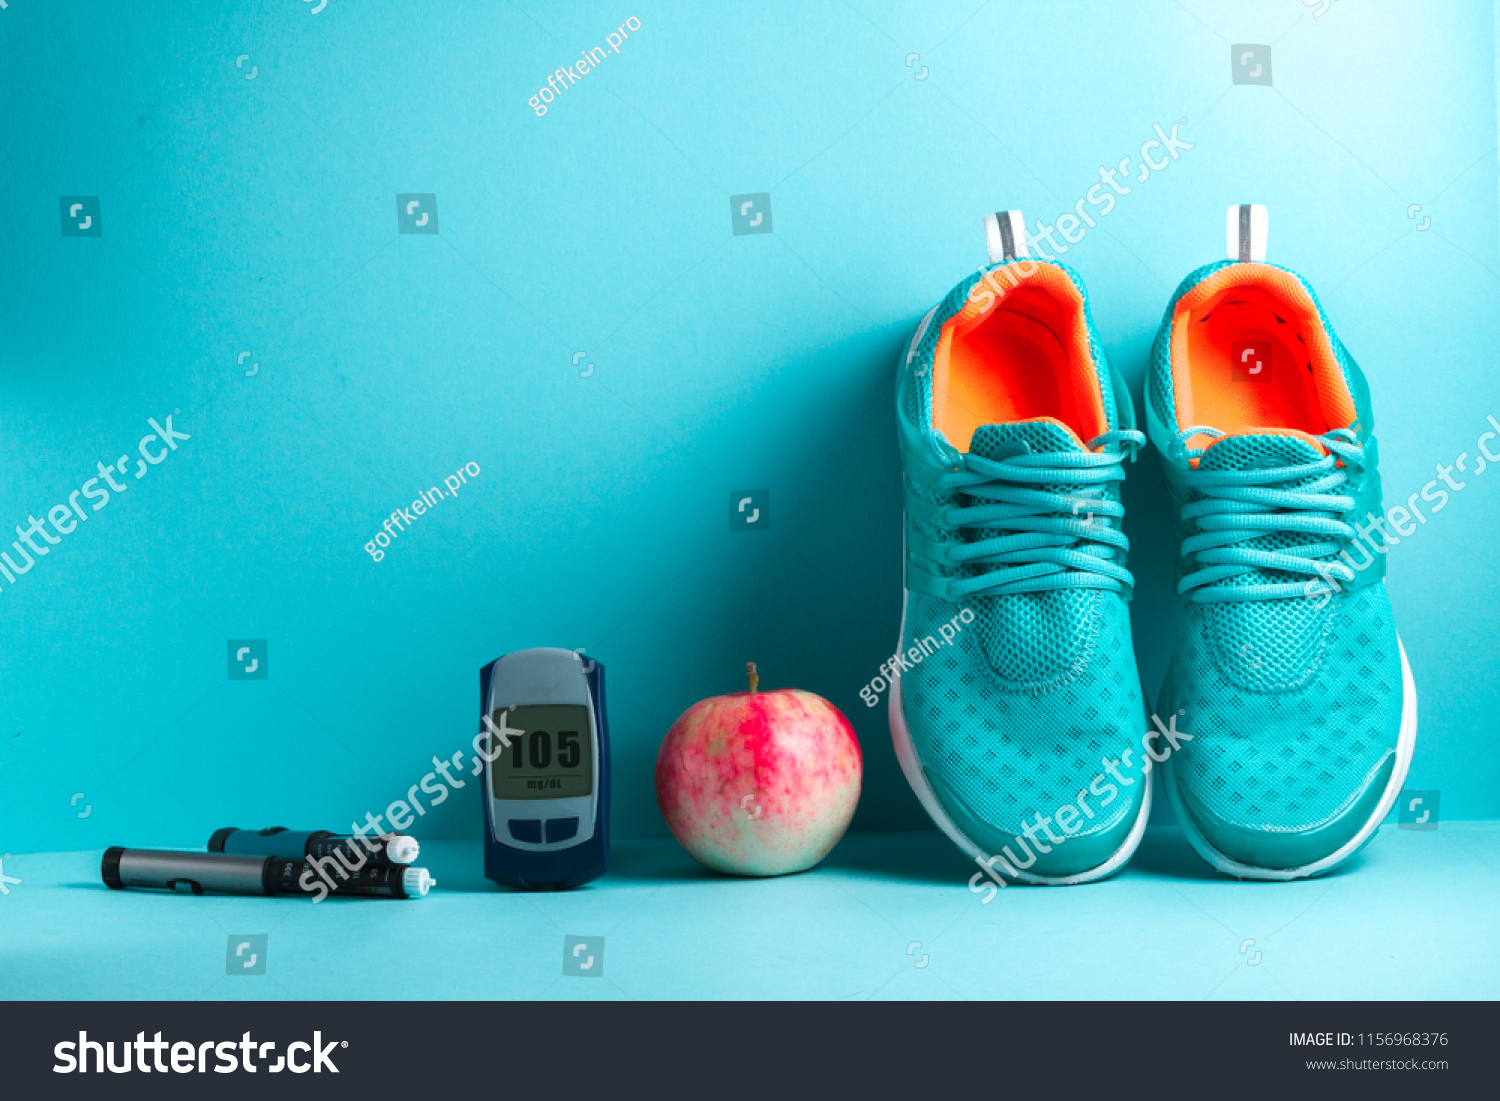 Concept of a healthy diabetic. Diabetes. Sports diabetic. Sport. Sports life of a diabetes patient.  #1156968376